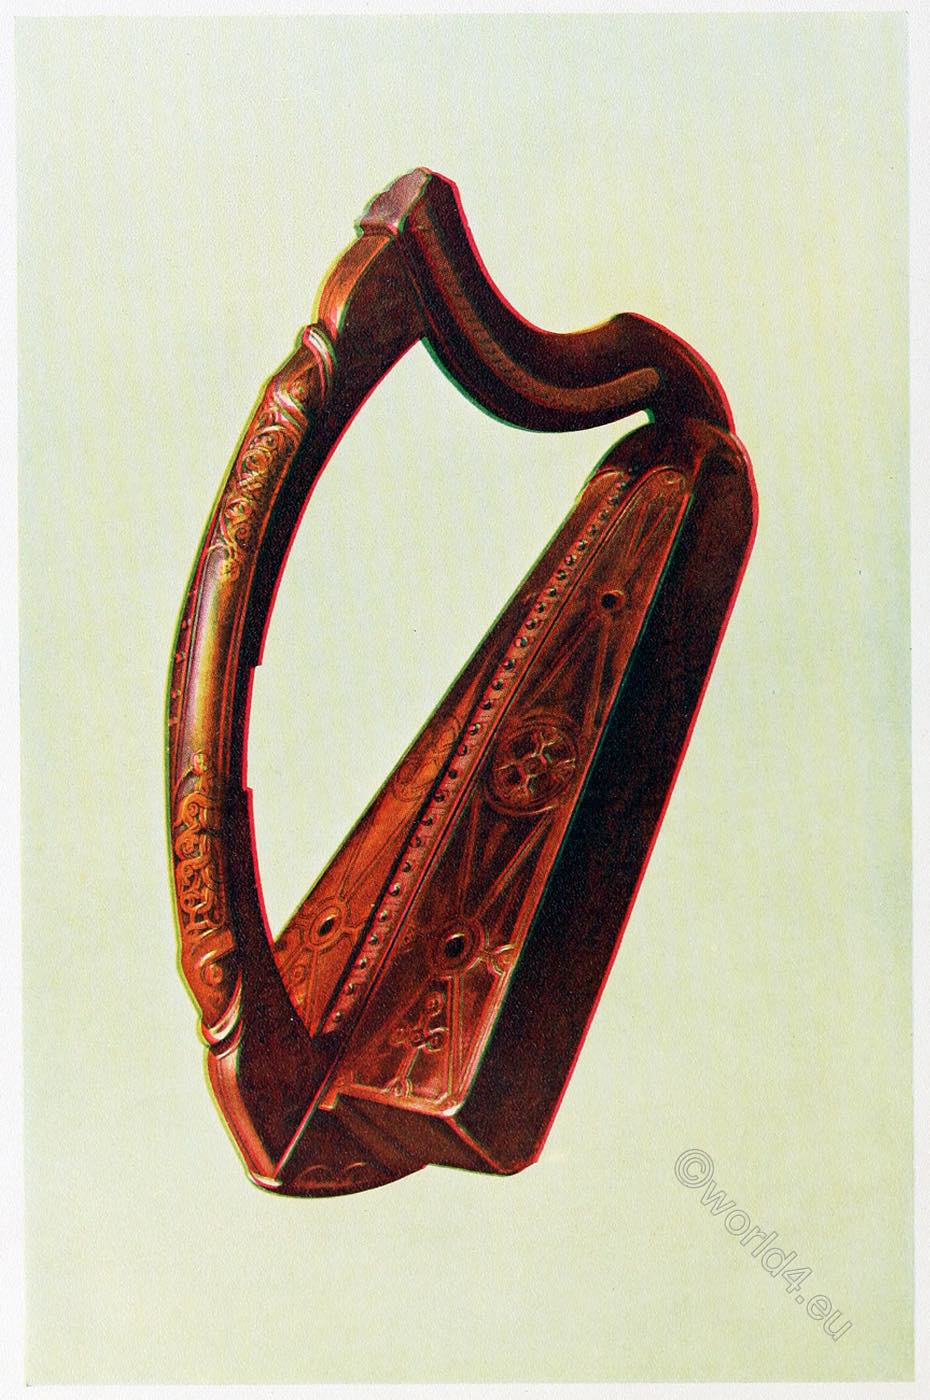 Queen Mary's, harp, Gaelic,  Historic, musical, instruments.